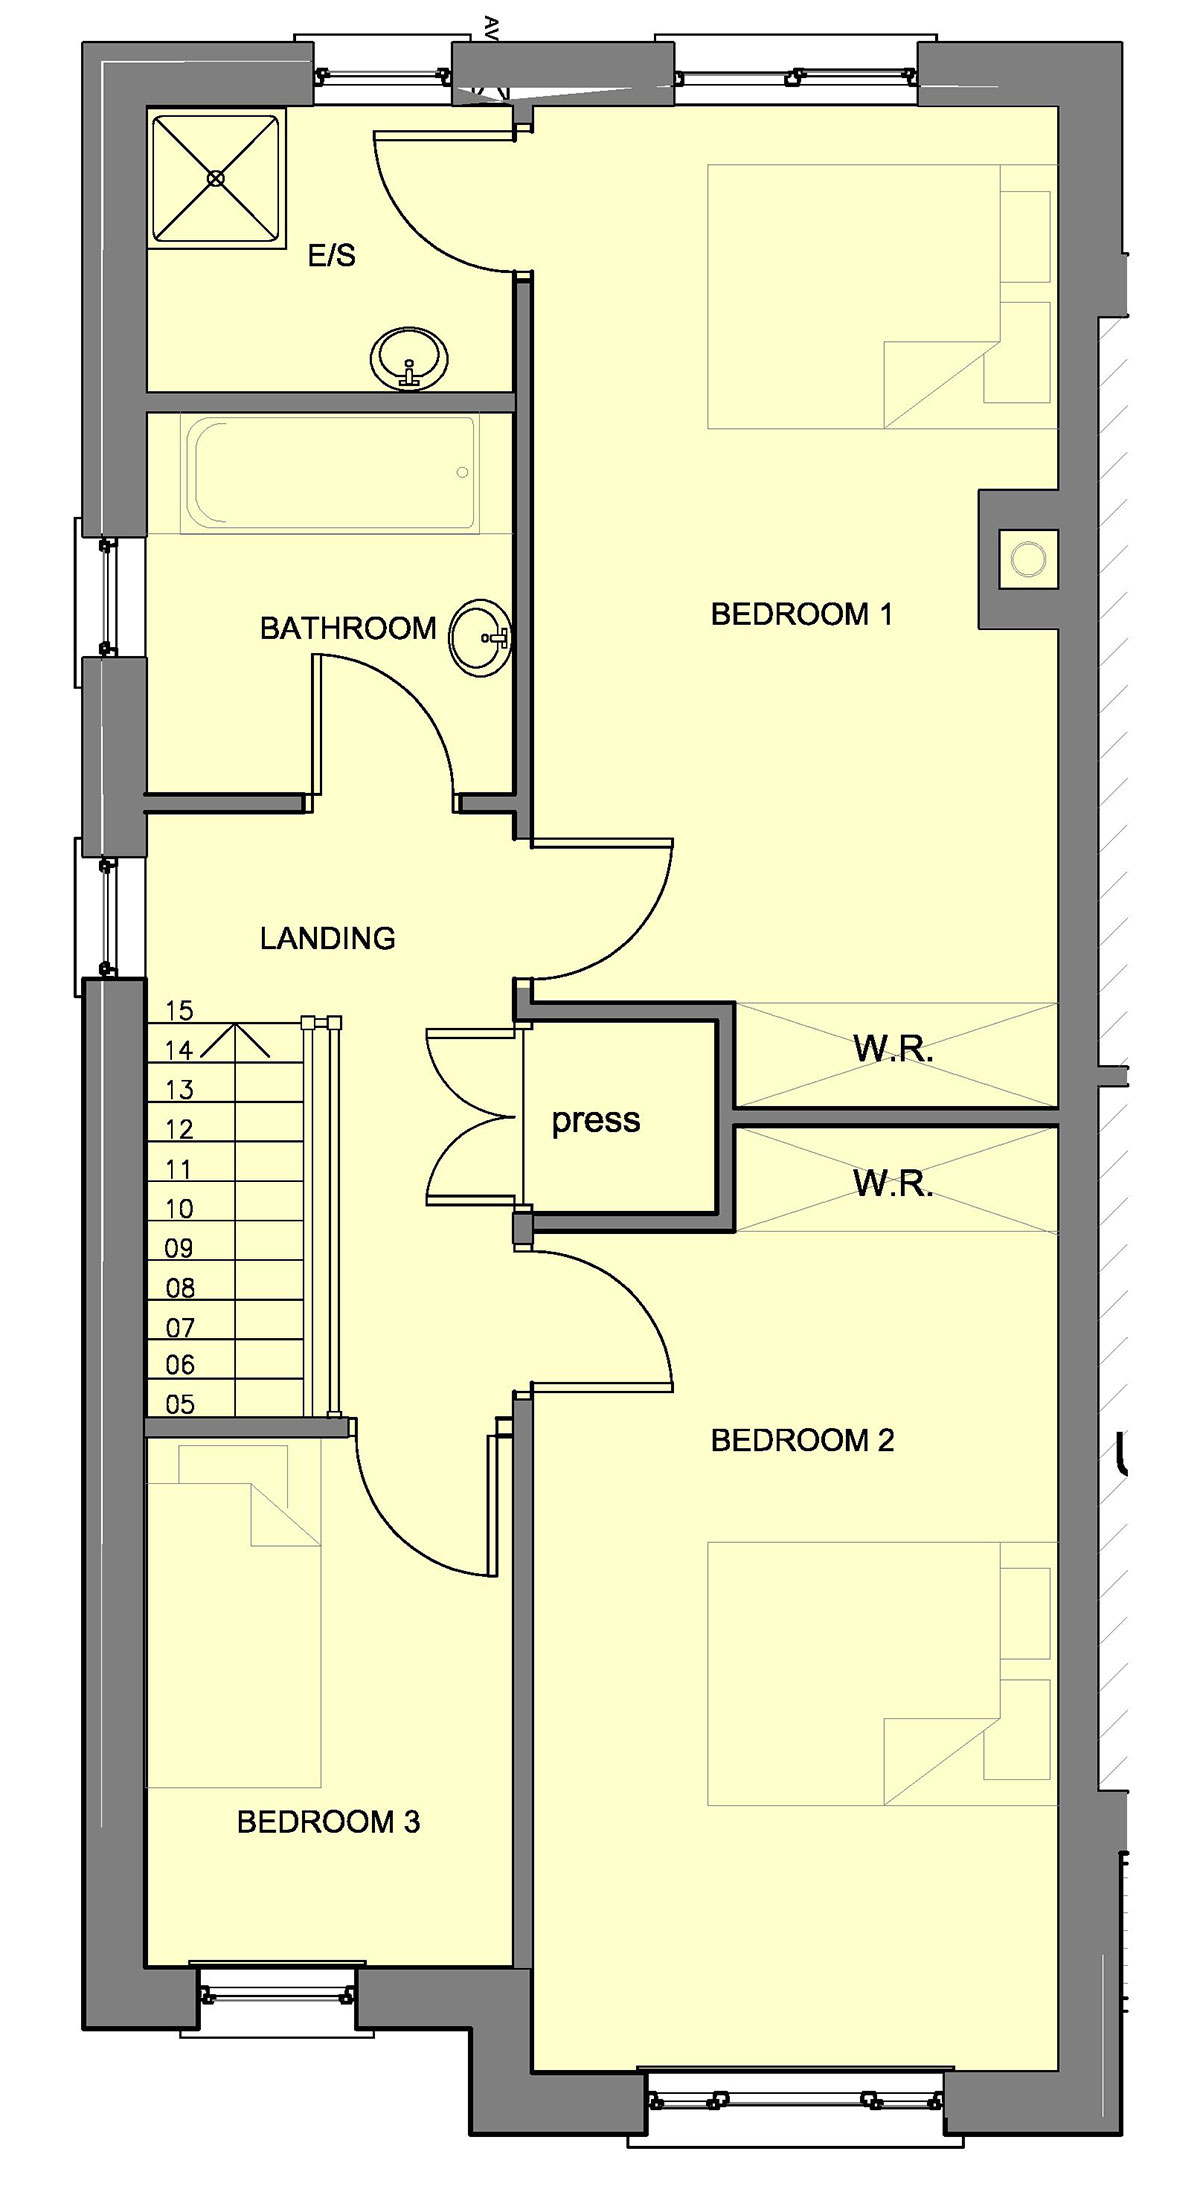 sycamore-first-floor